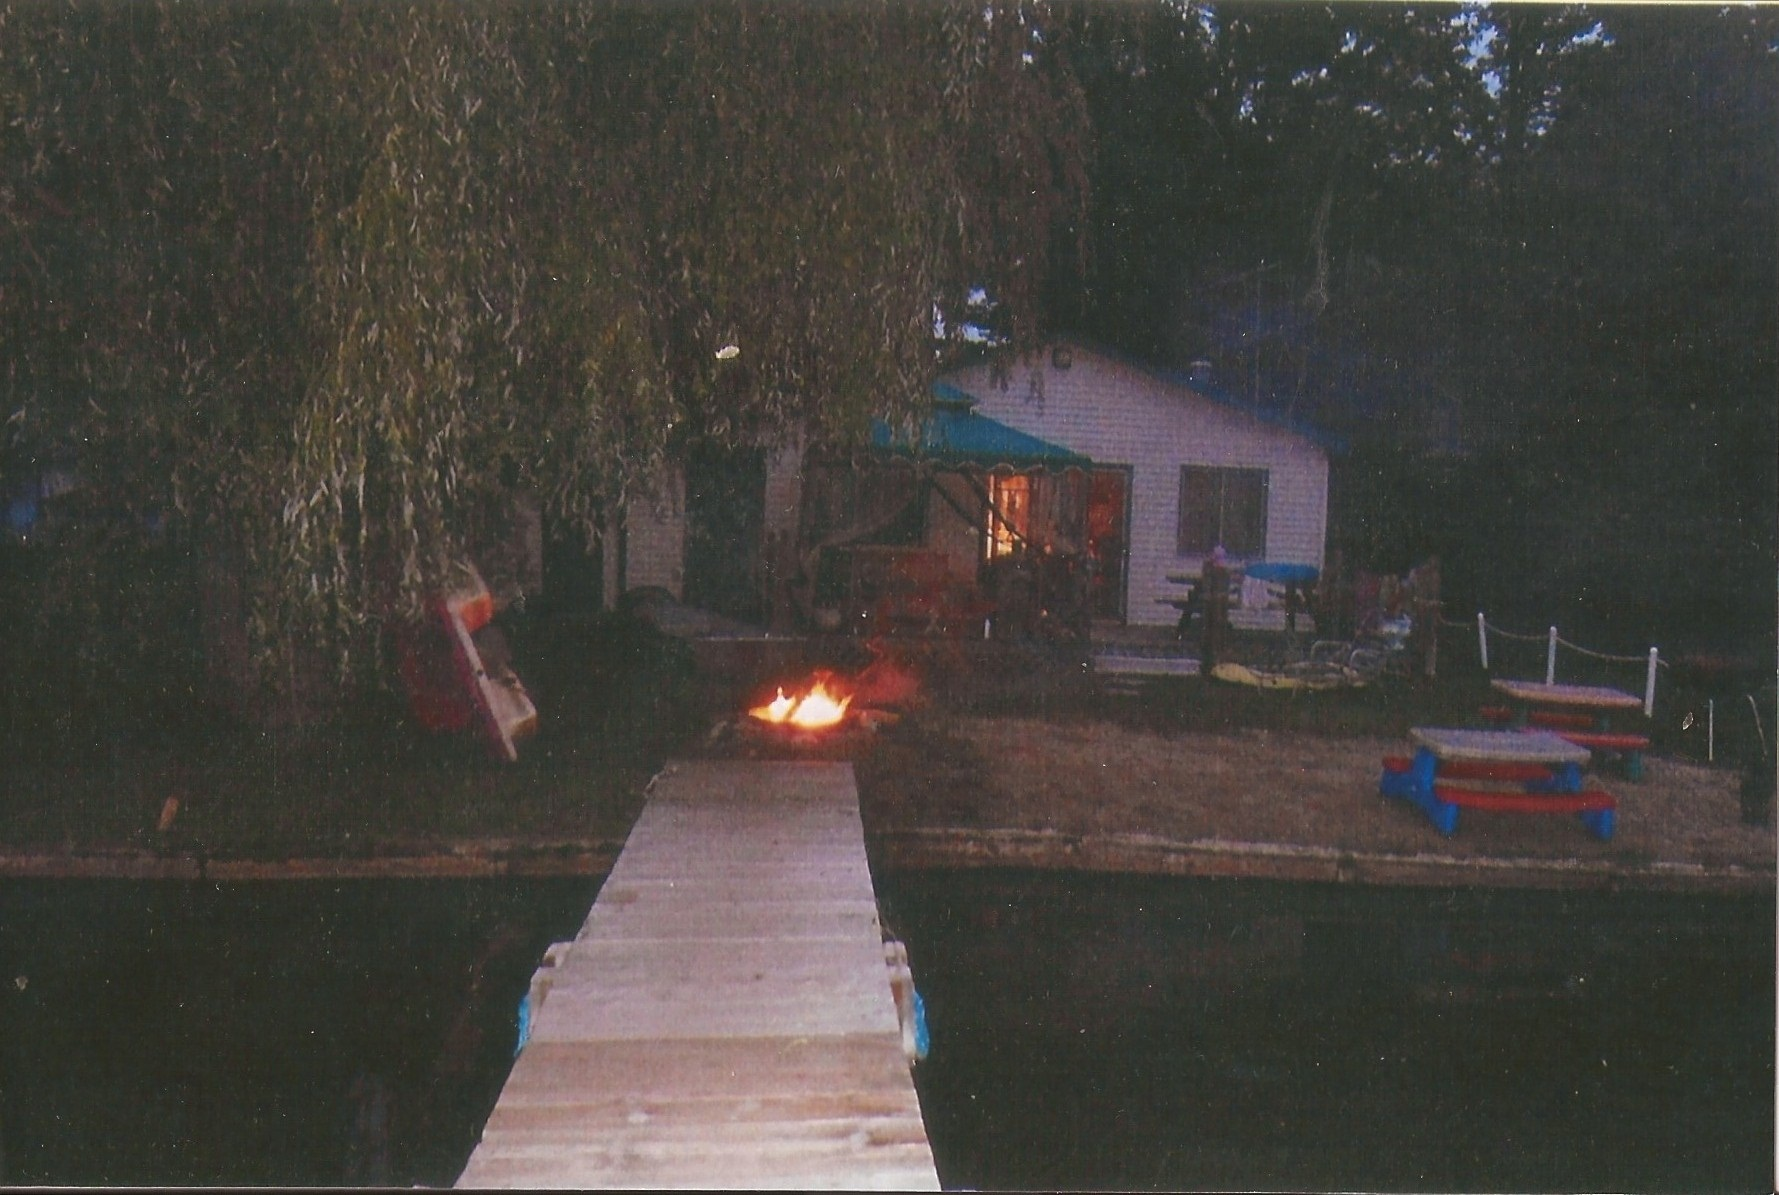 rentals mi michigan local west lake pinterest cabins rides cabin and houghton attractions city branch other pin